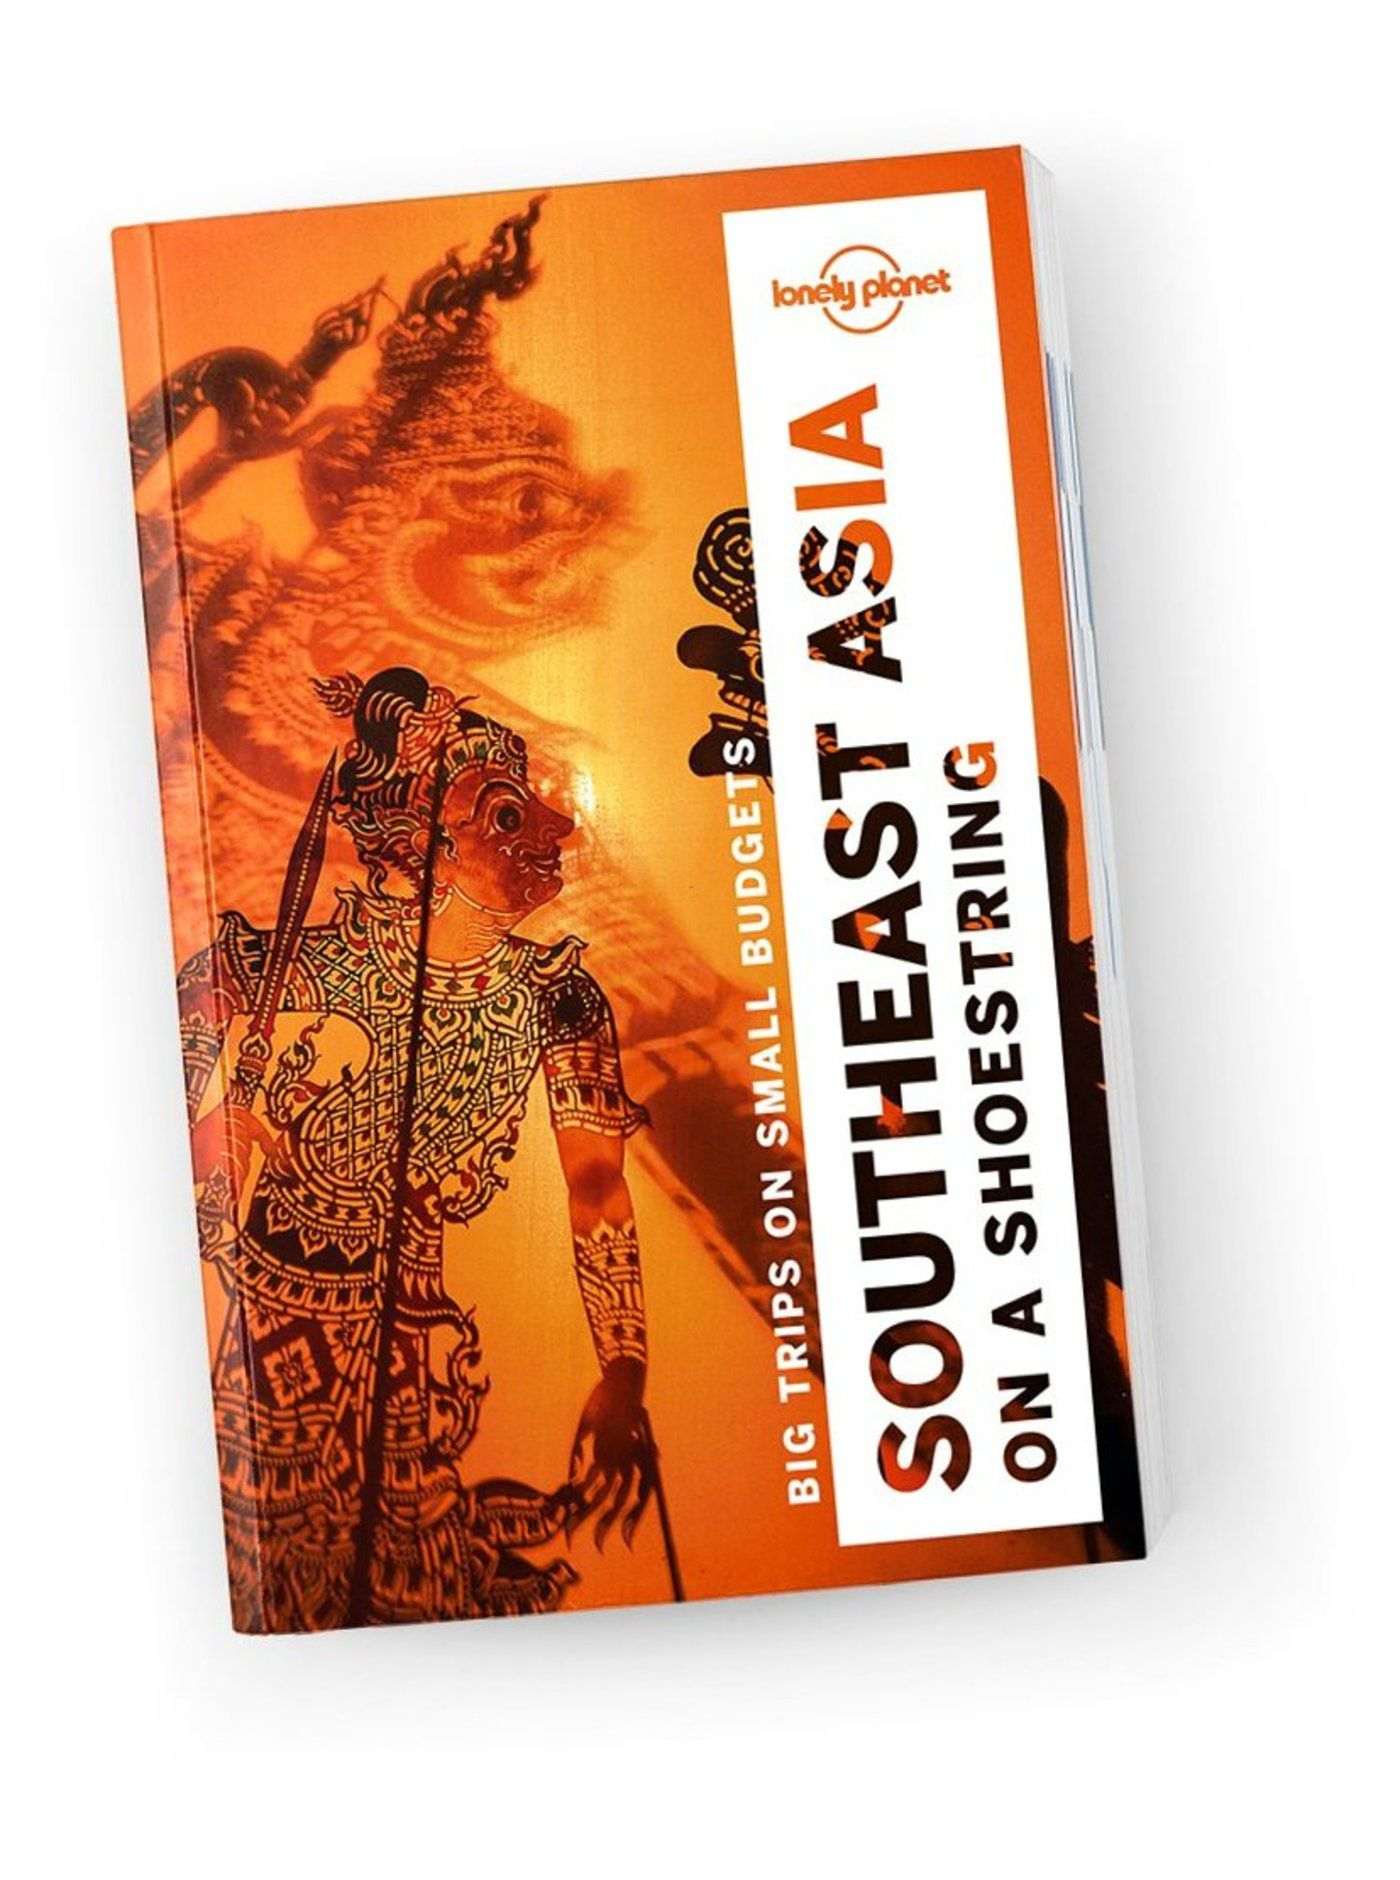 lonely planet indonesia pdf online